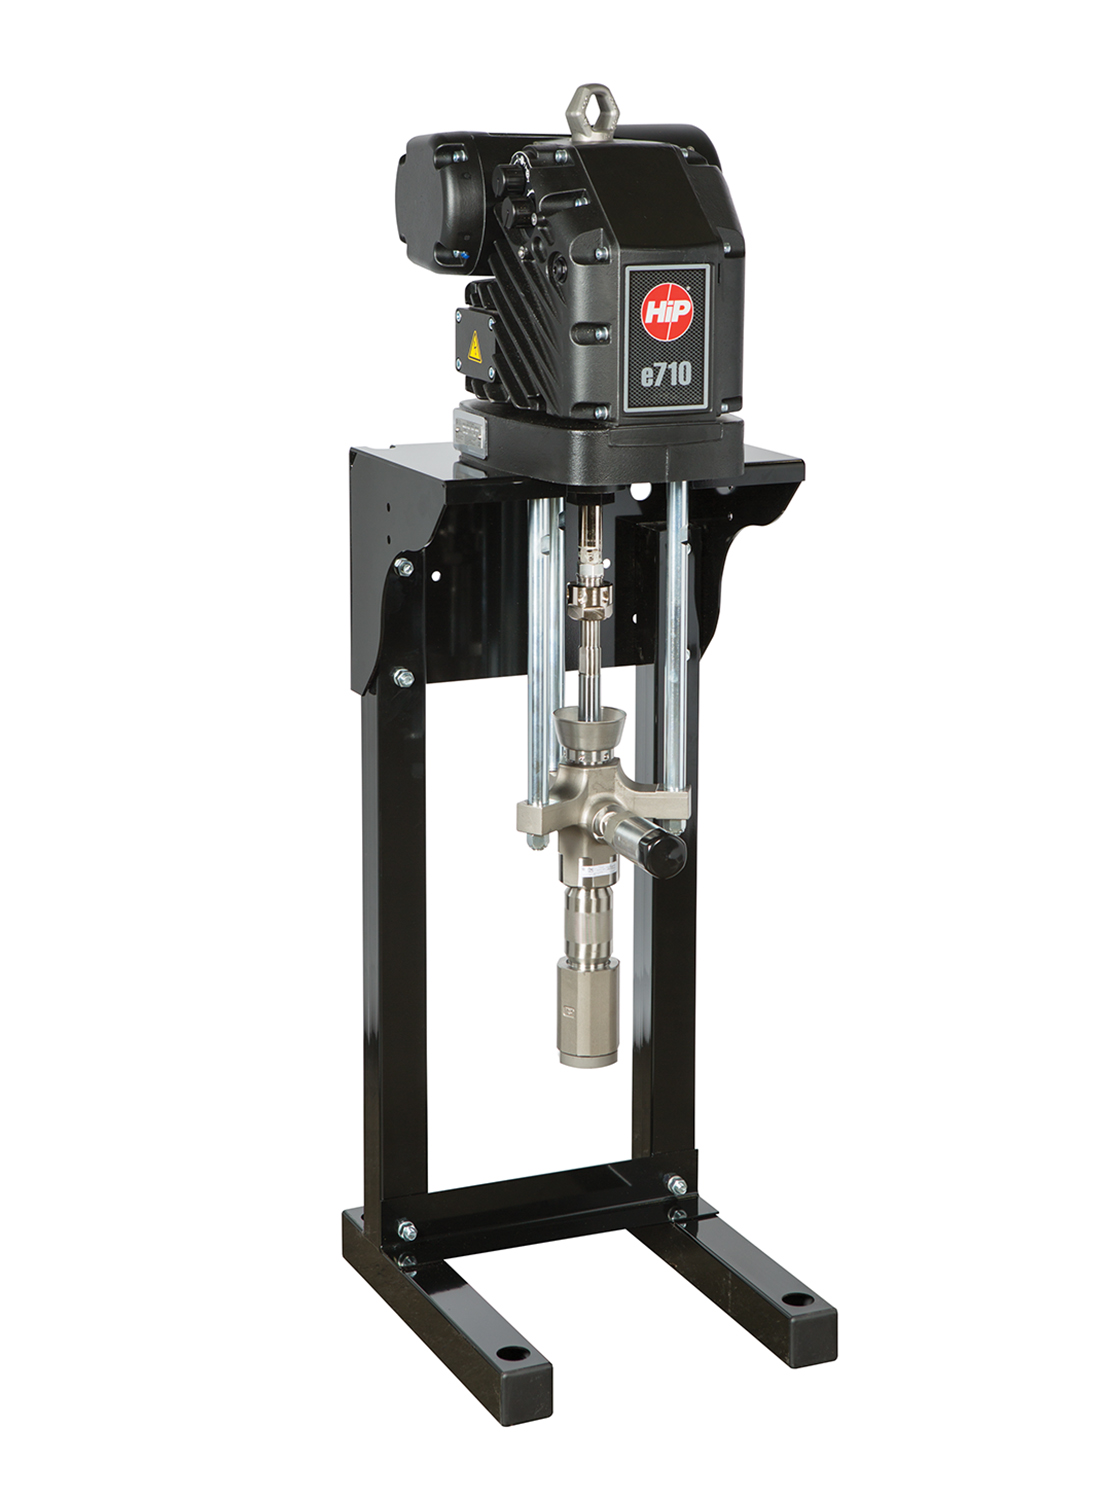 CO2 Extraction Pump System Provides Continuous Duty Cycle